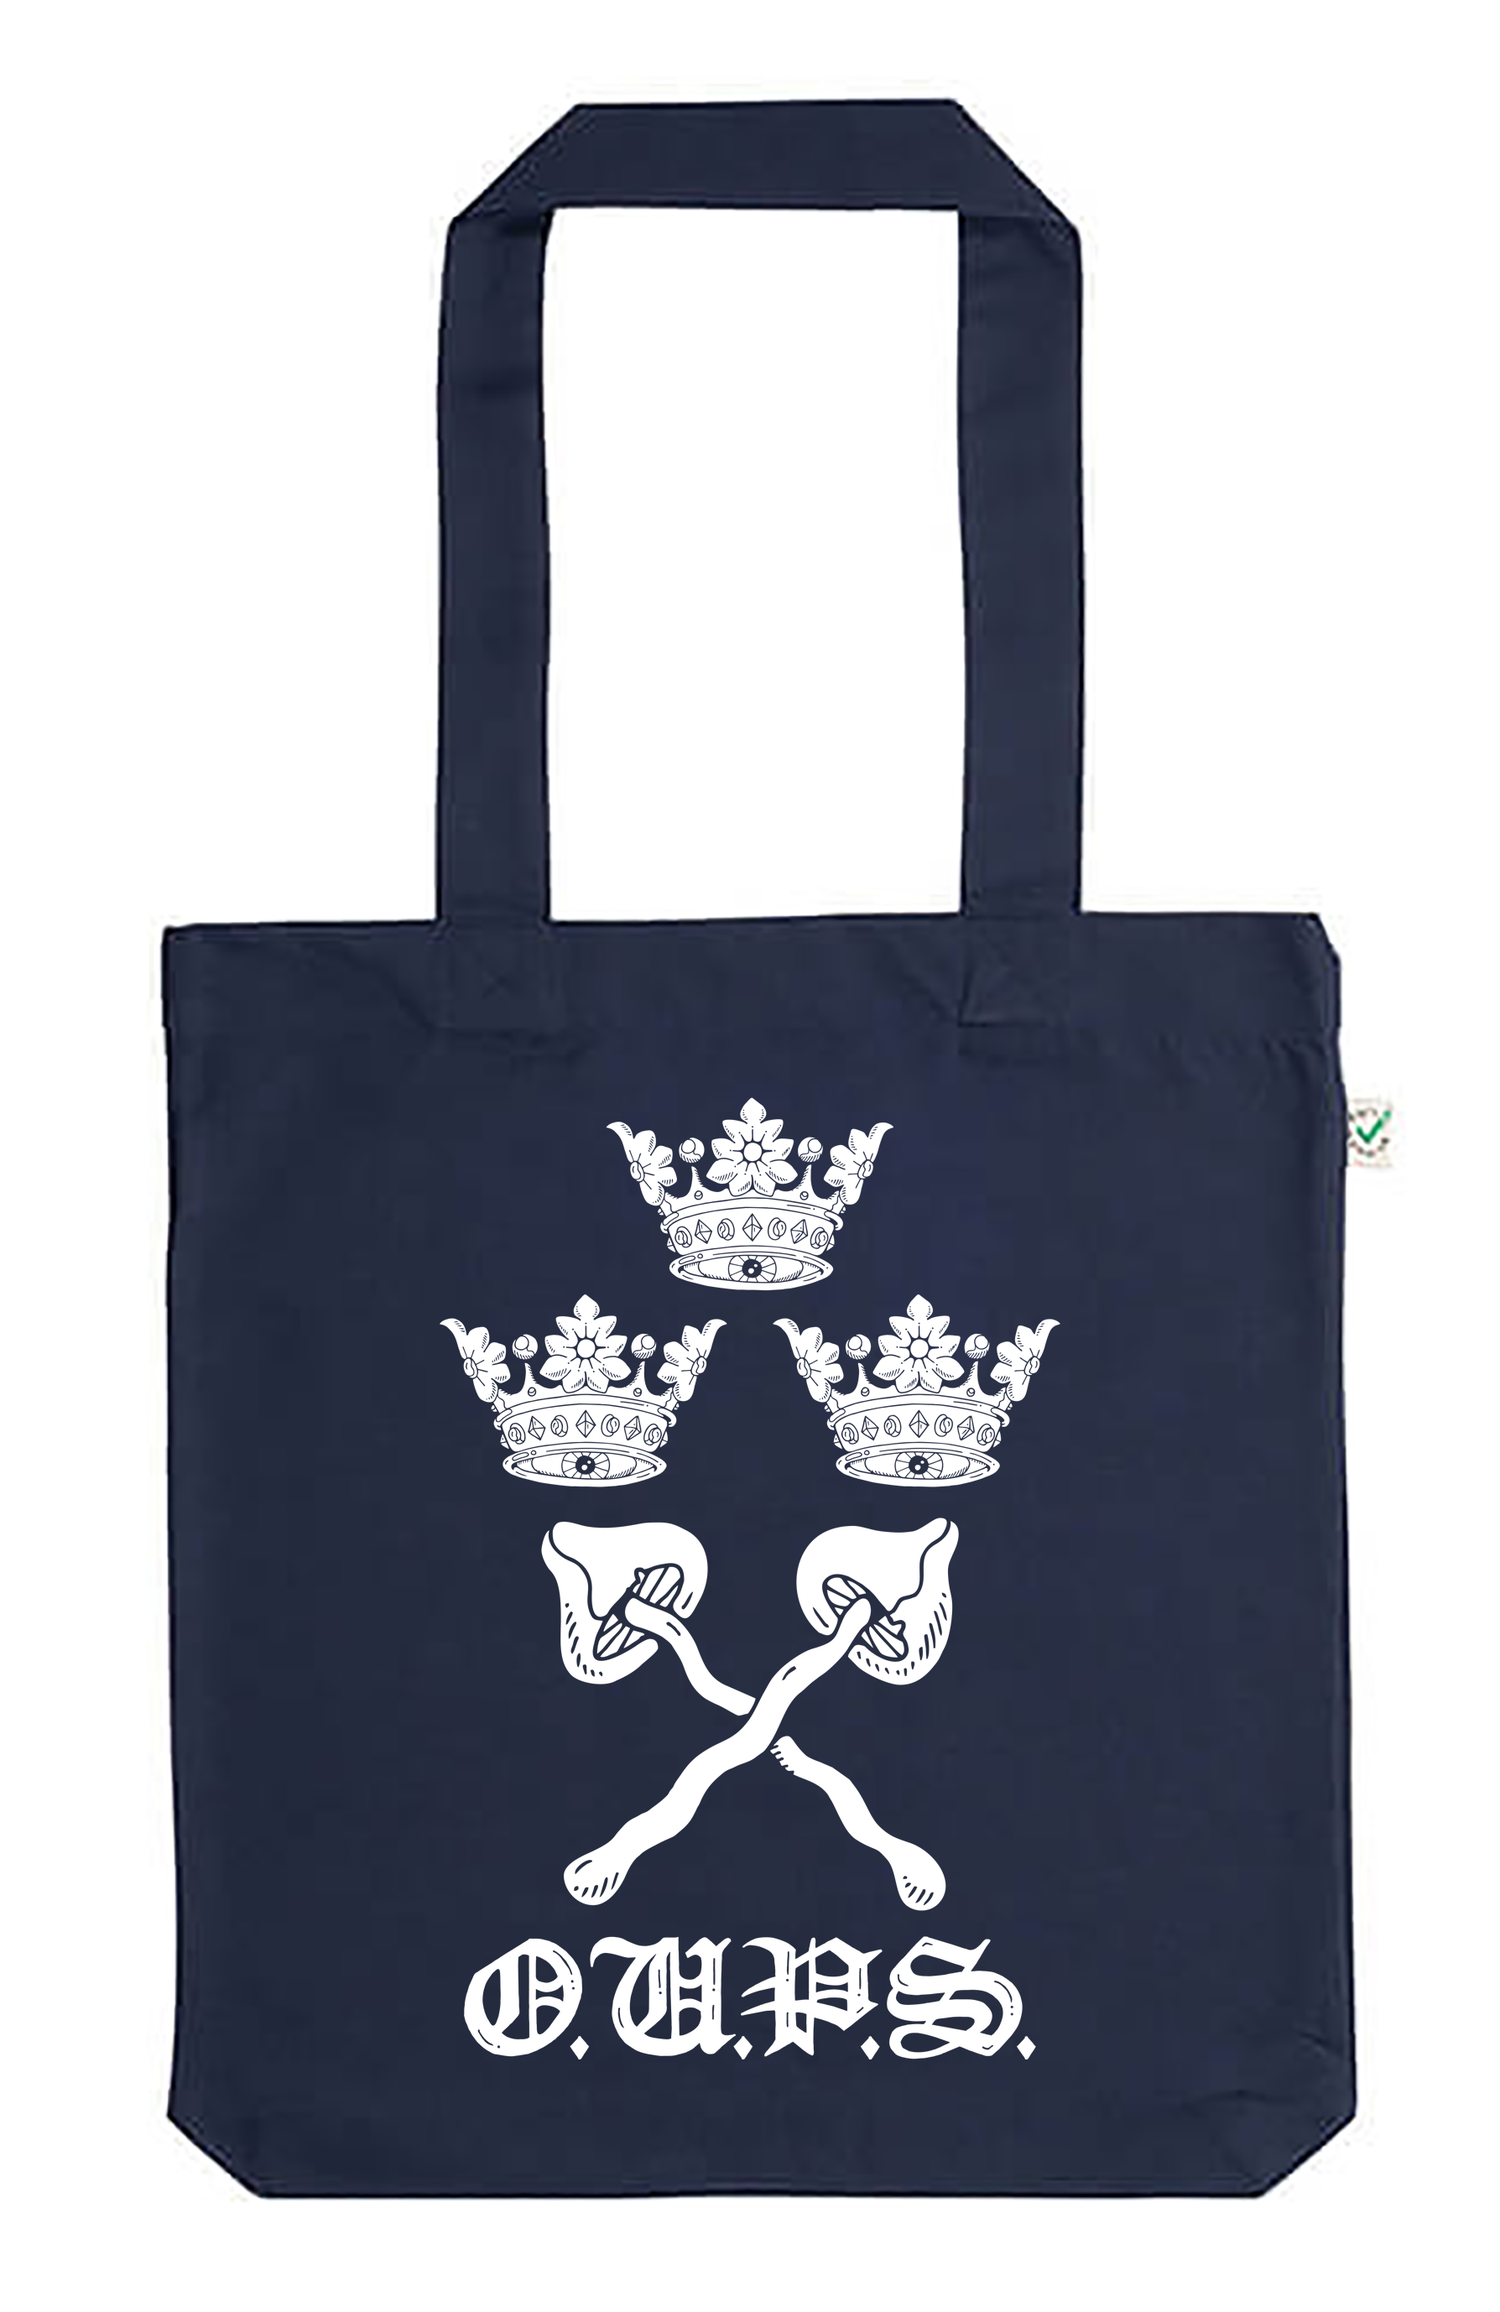 Image of Pre-order varsity classic tote/shopping bag navy (certified organic cotton by Earth Positive)